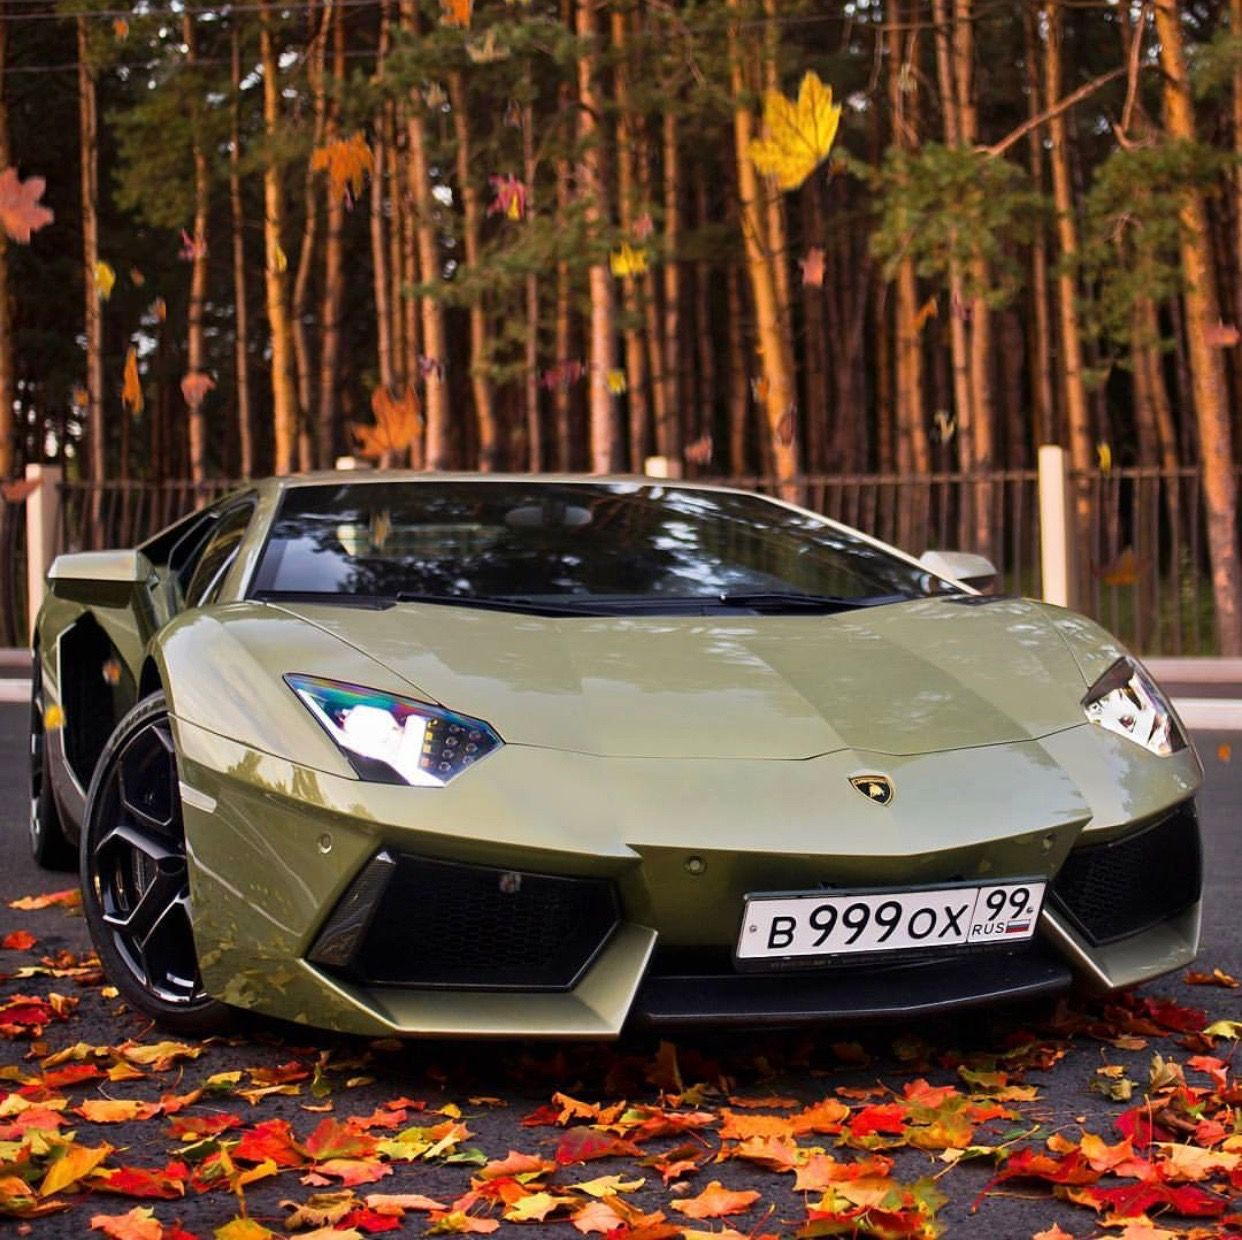 Lamborghini Aventador Painted In Verde Draco Photo Taken By